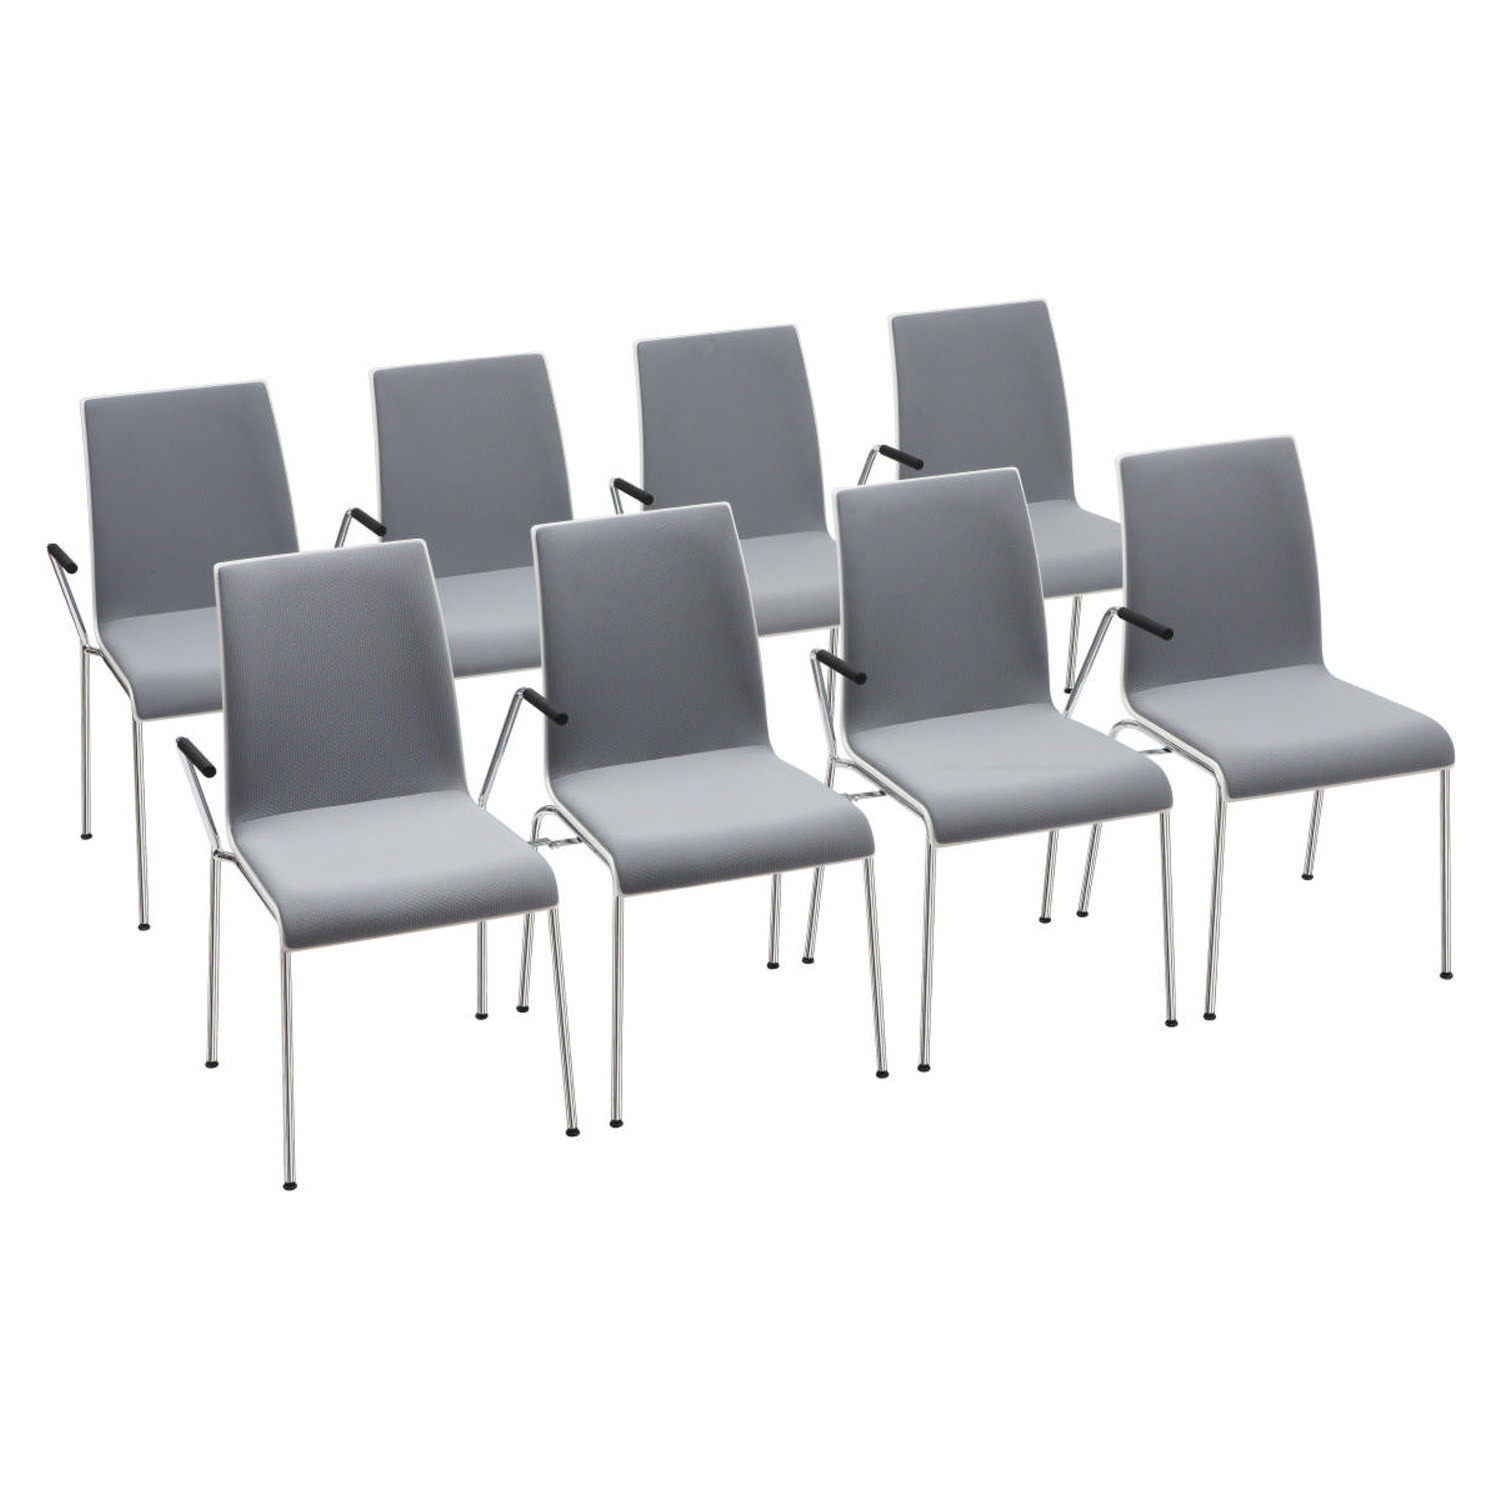 Prime is ideal for large-scale seating, cafeterias and canteens